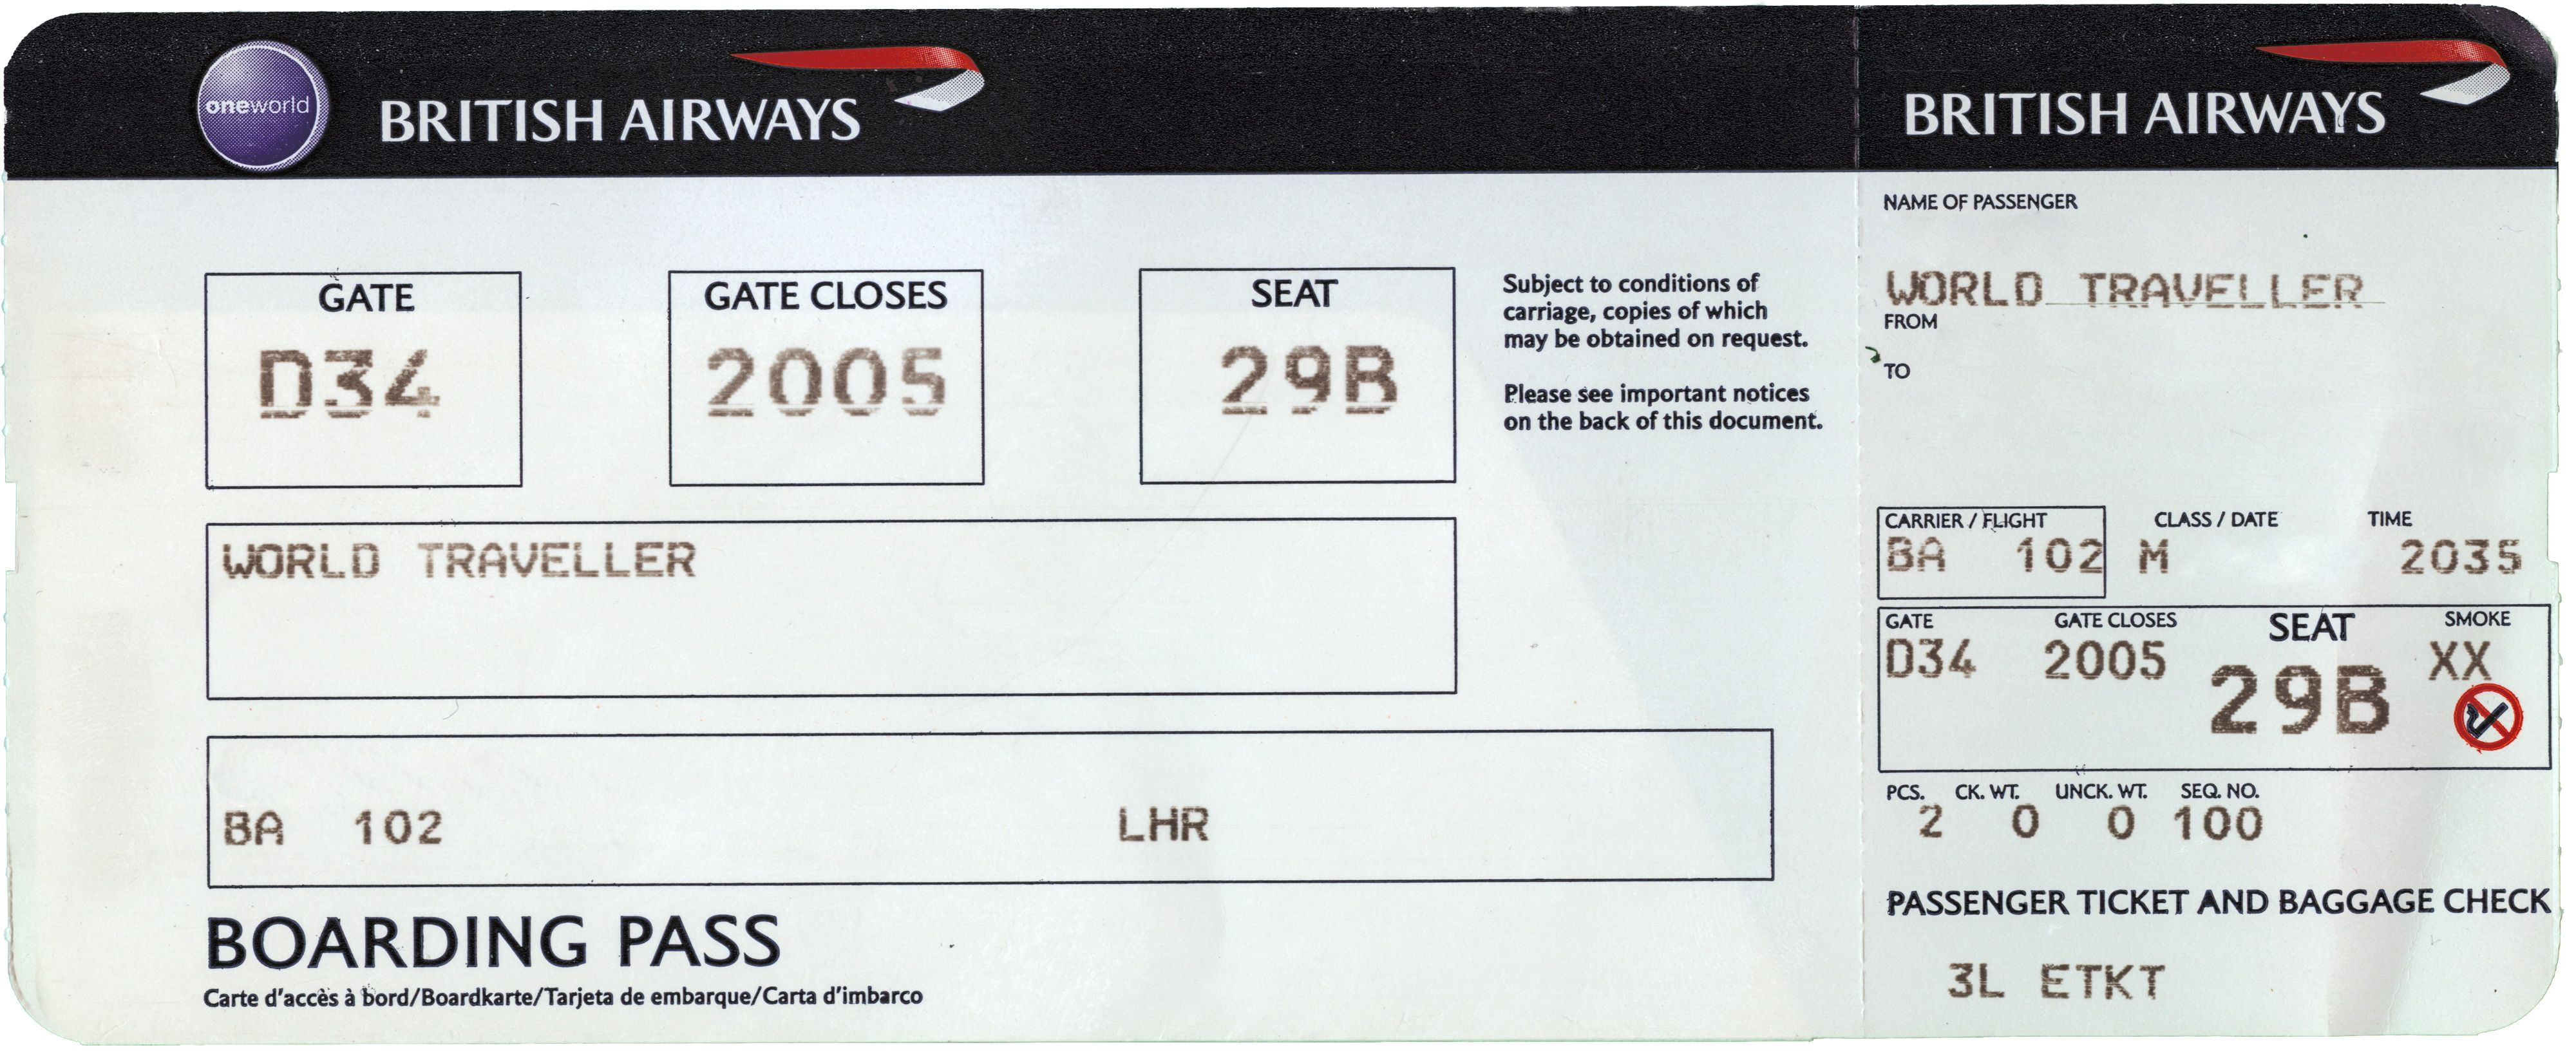 BoardingPass  Paper    Boarding Pass